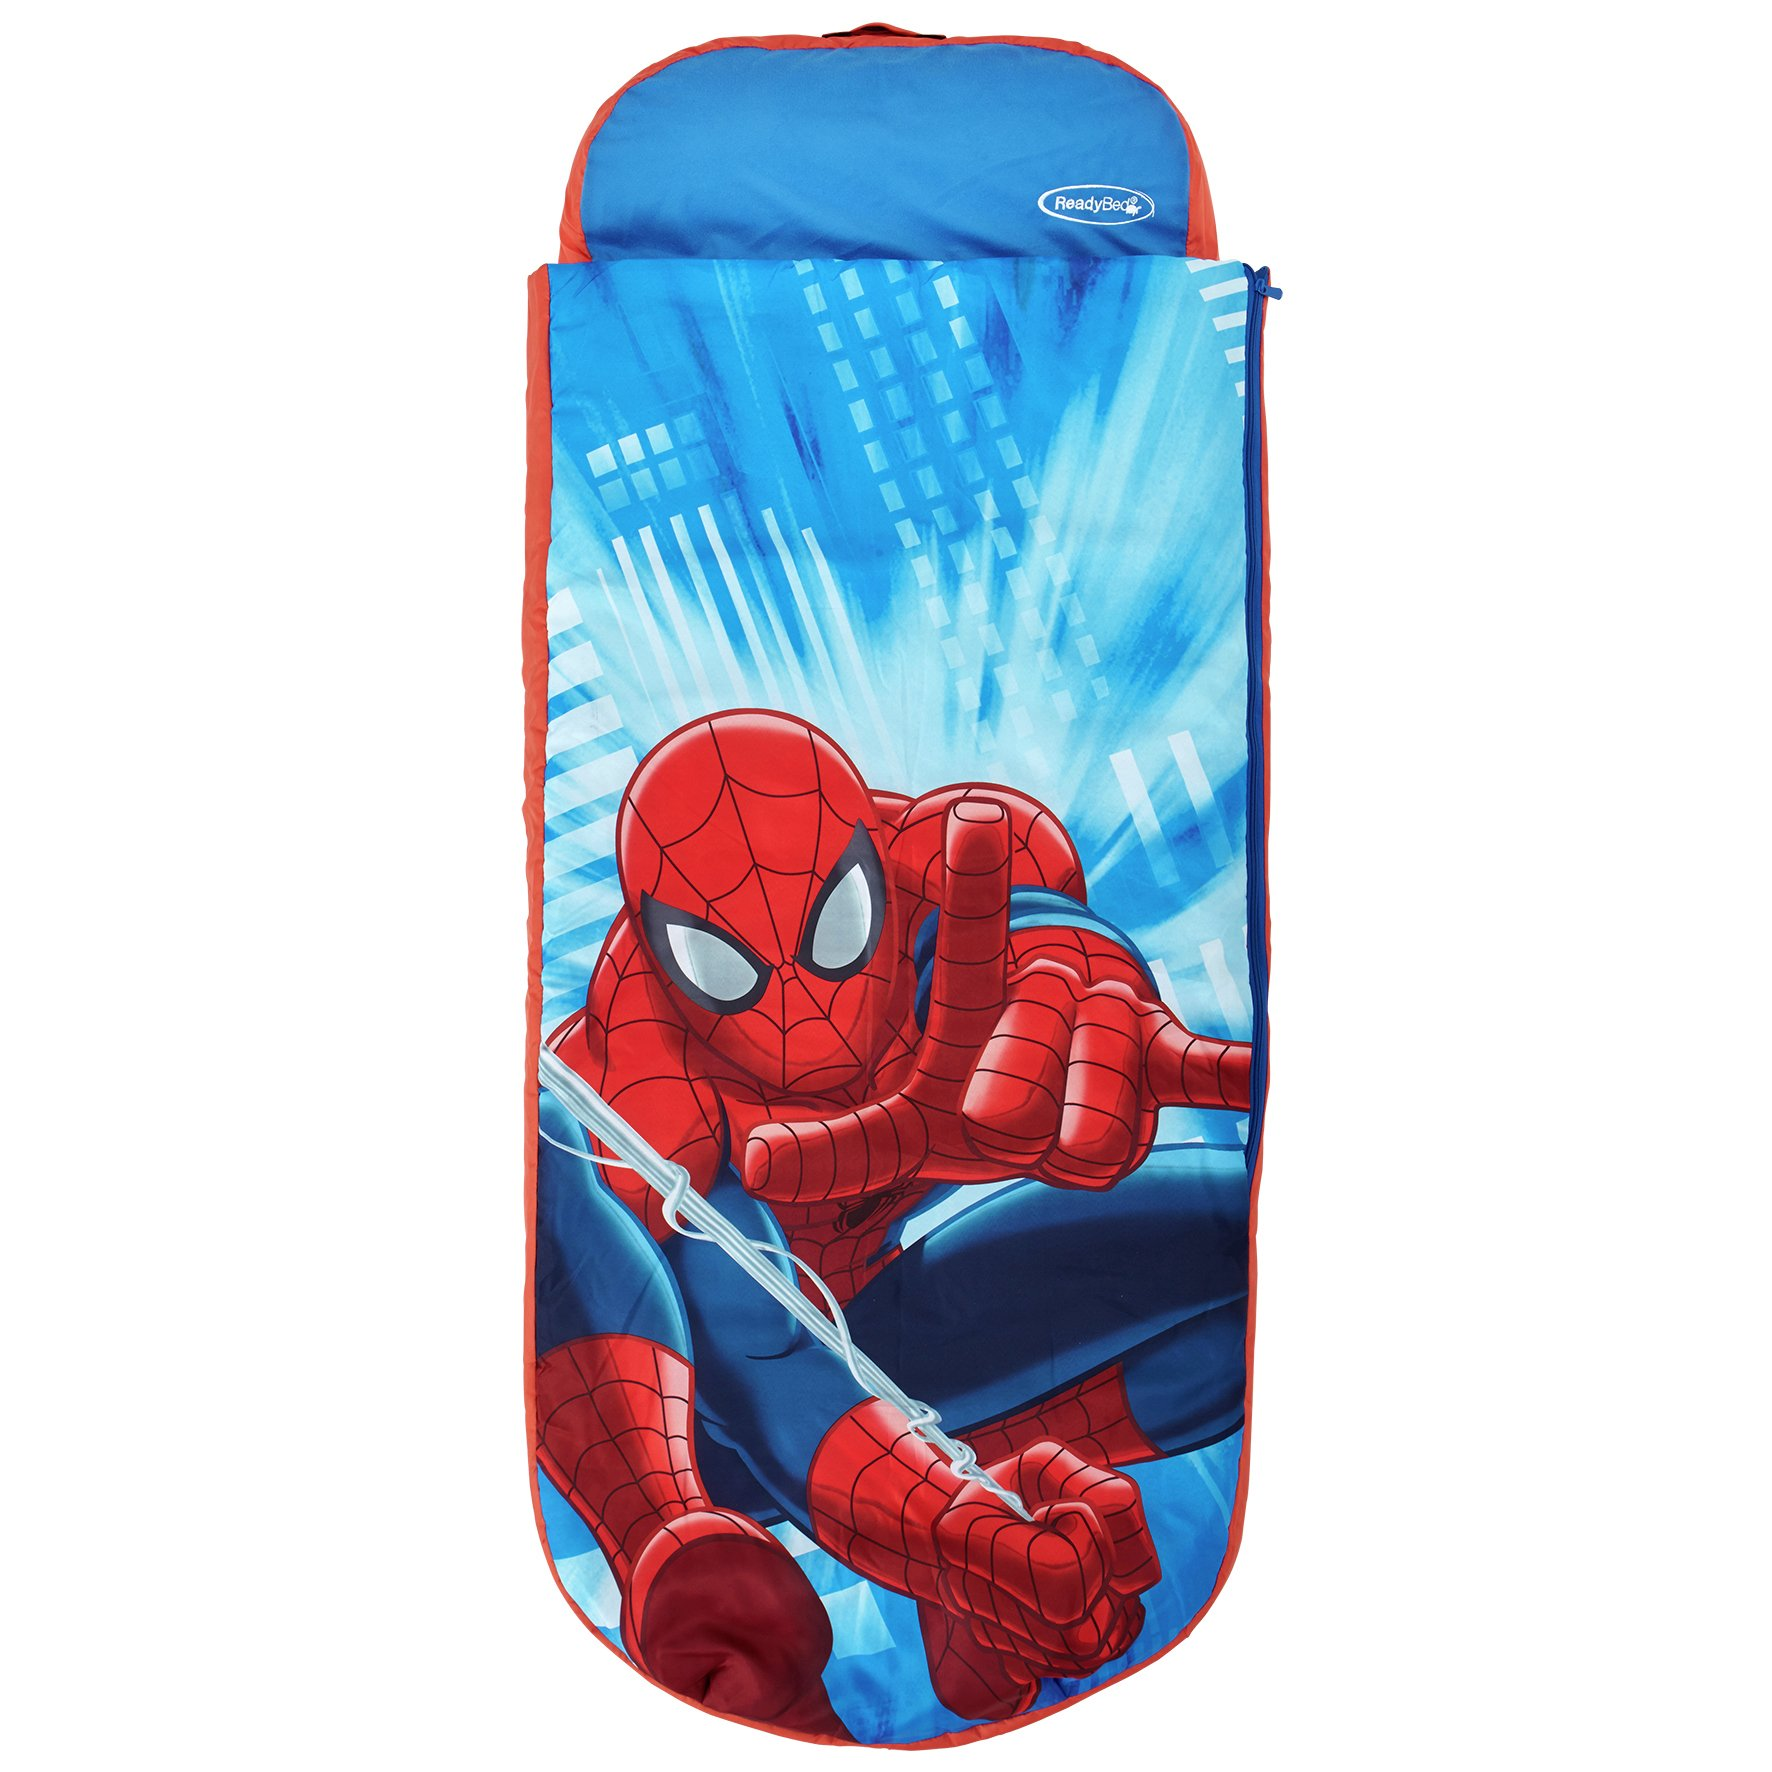 Spider-Man - Junior - ReadyBed - Airbed and Sleeping Bag